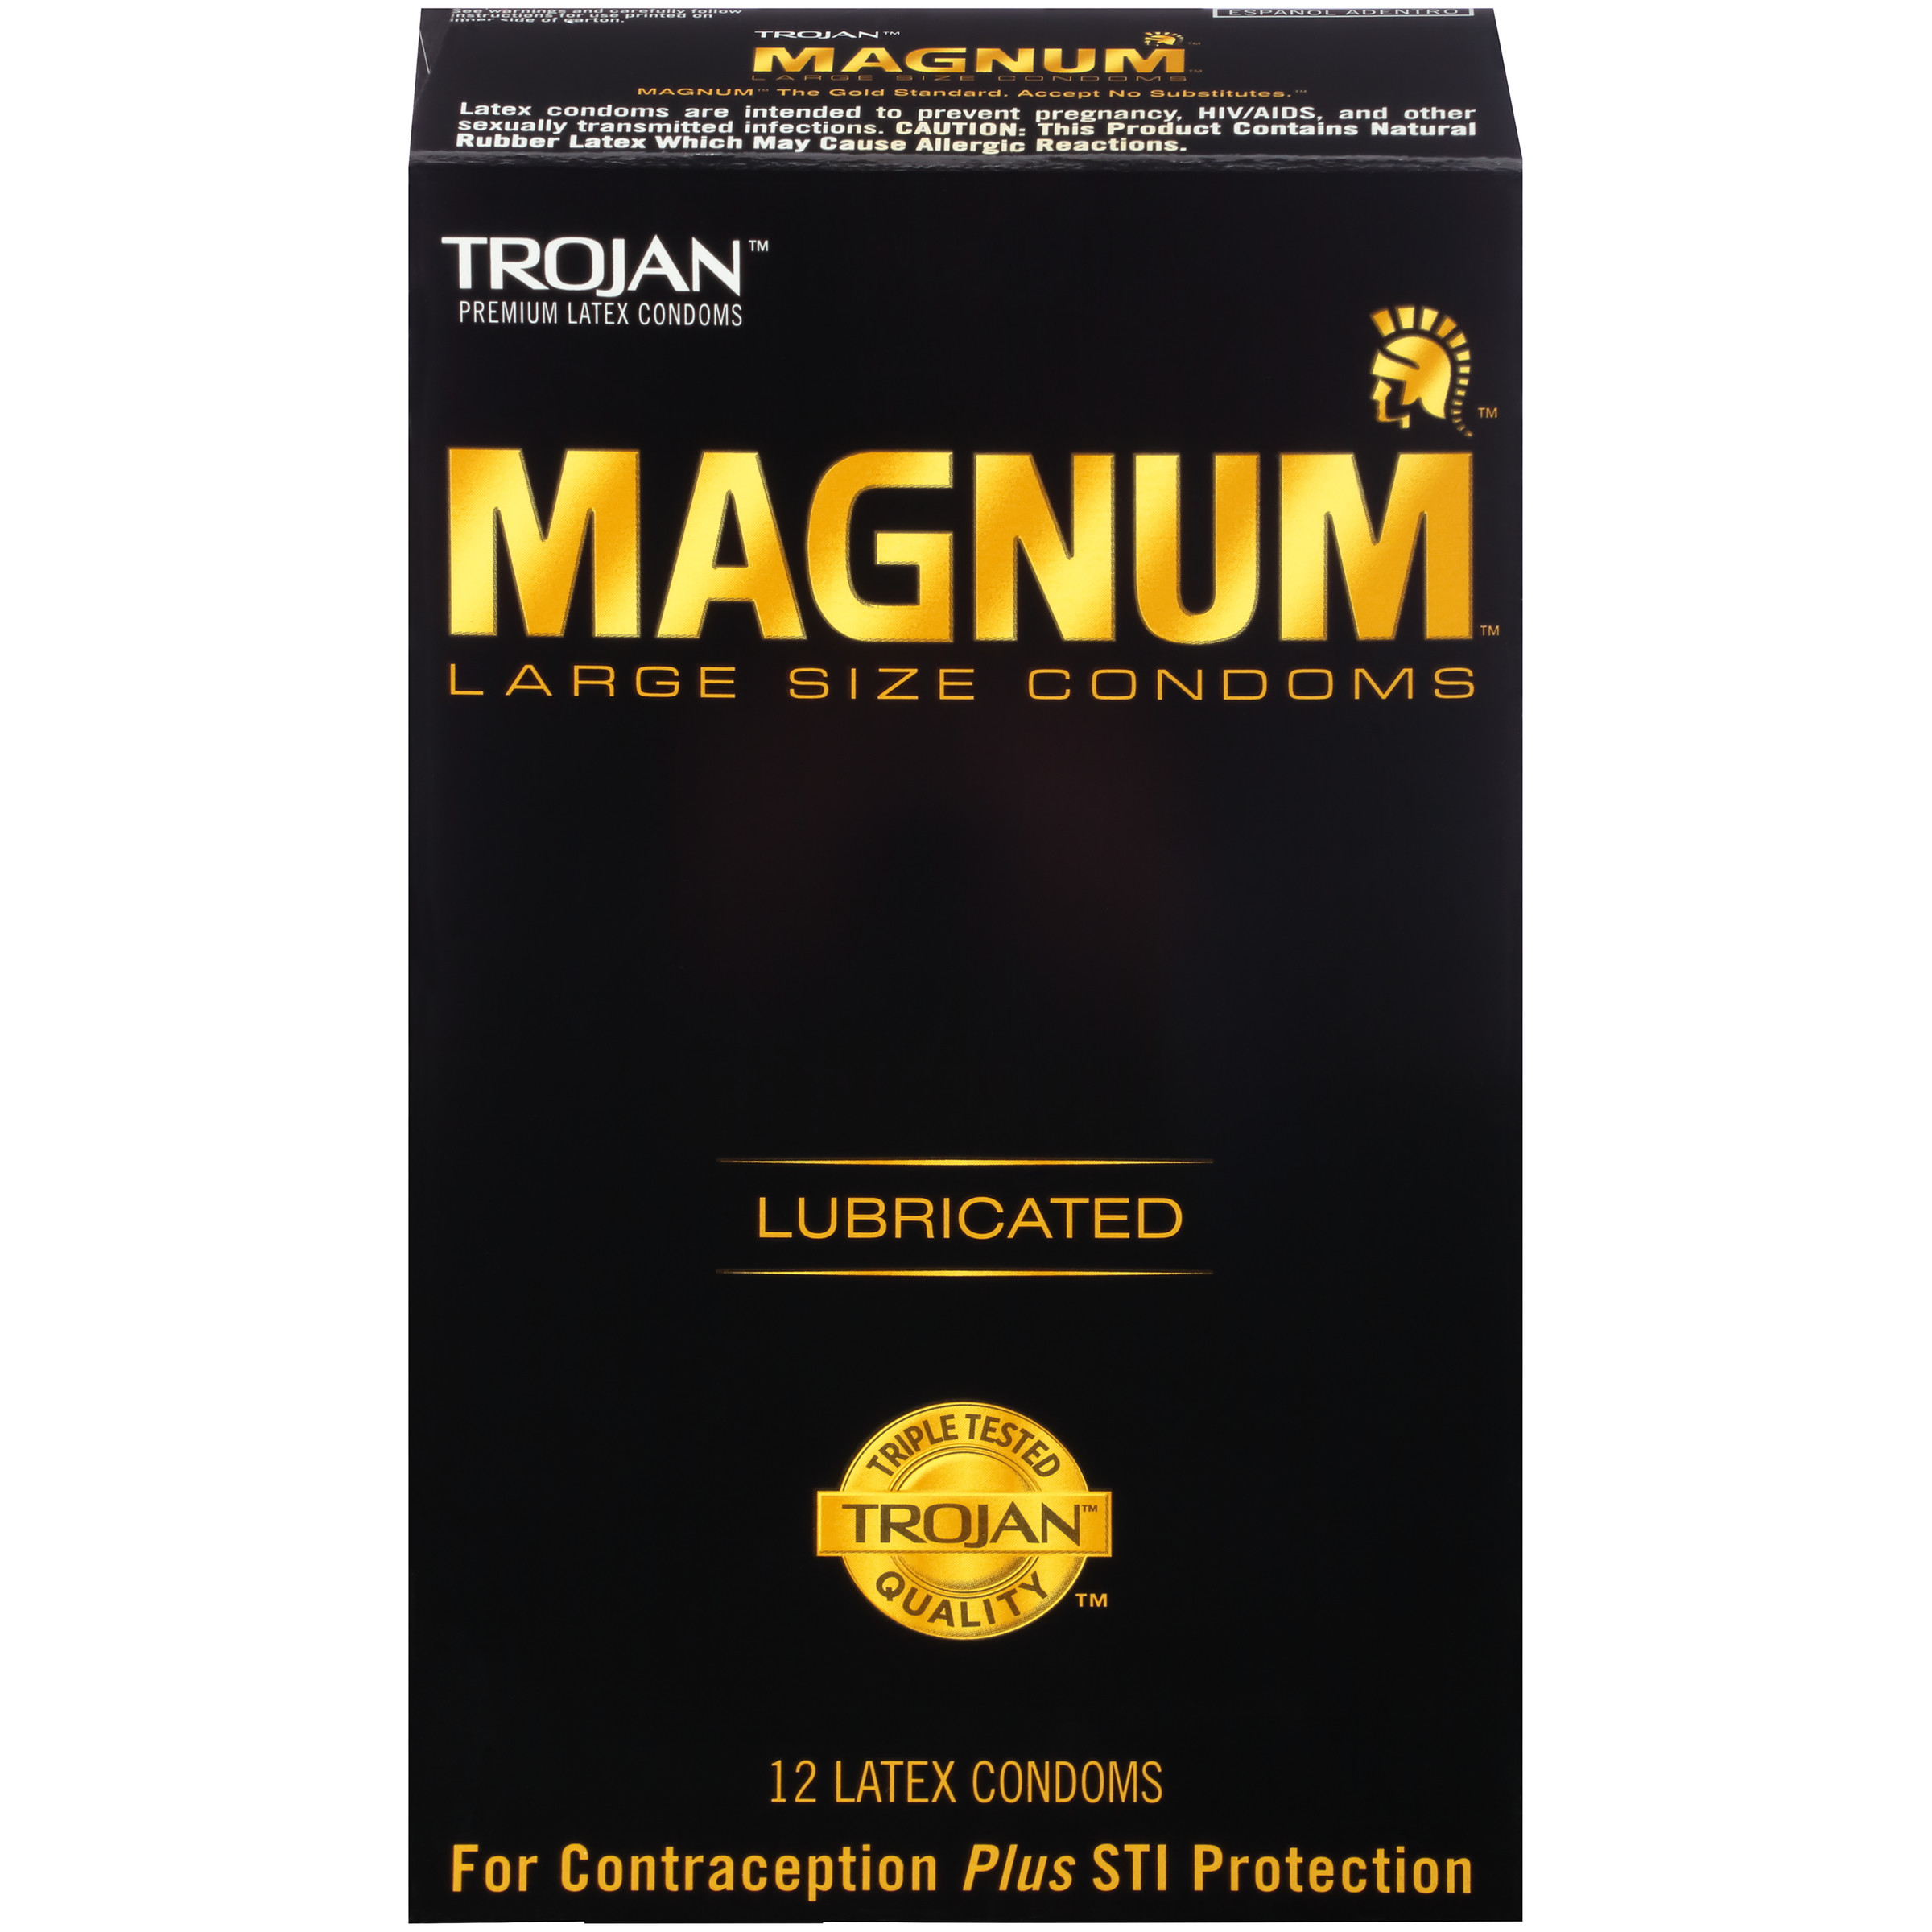 MAGNUM Large Size Condoms, 12ct